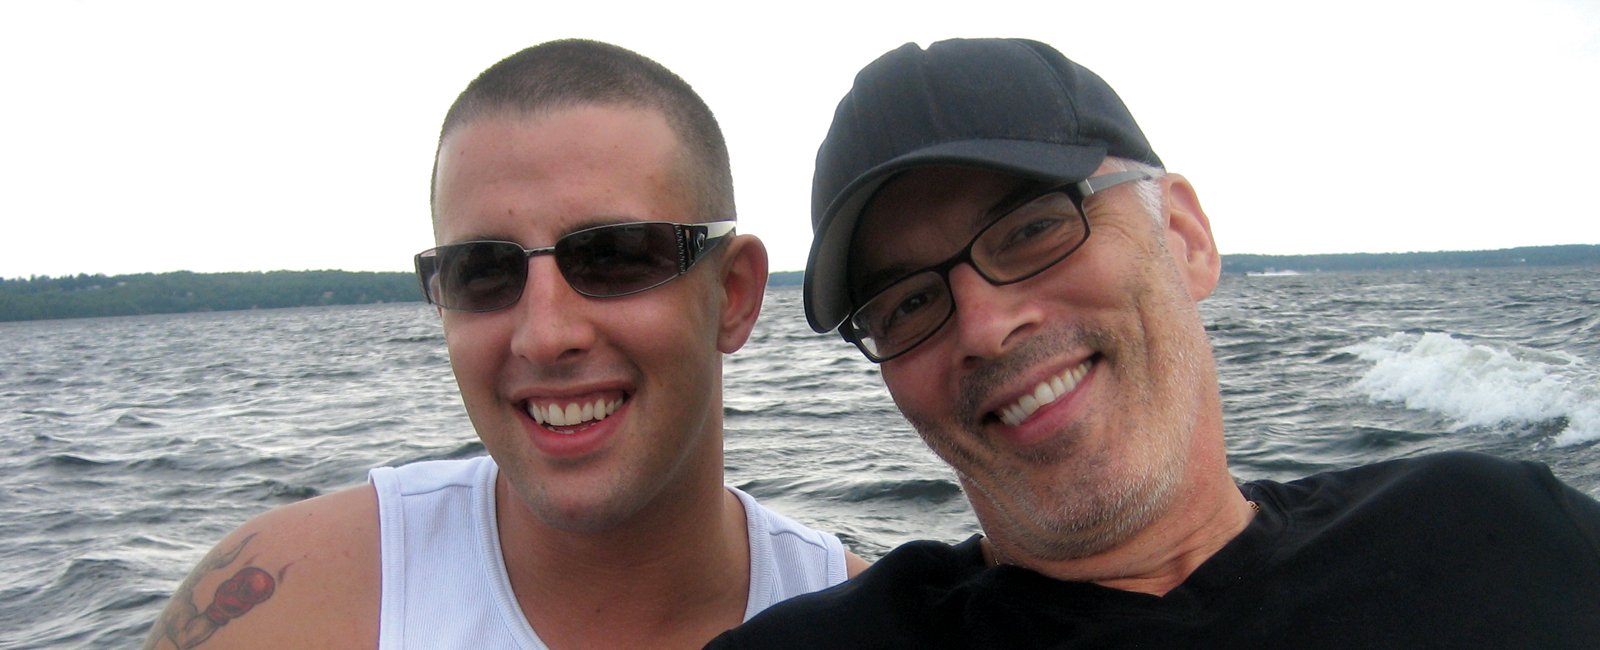 Bruce Oake (1985 - 2011) pictured with father Scott